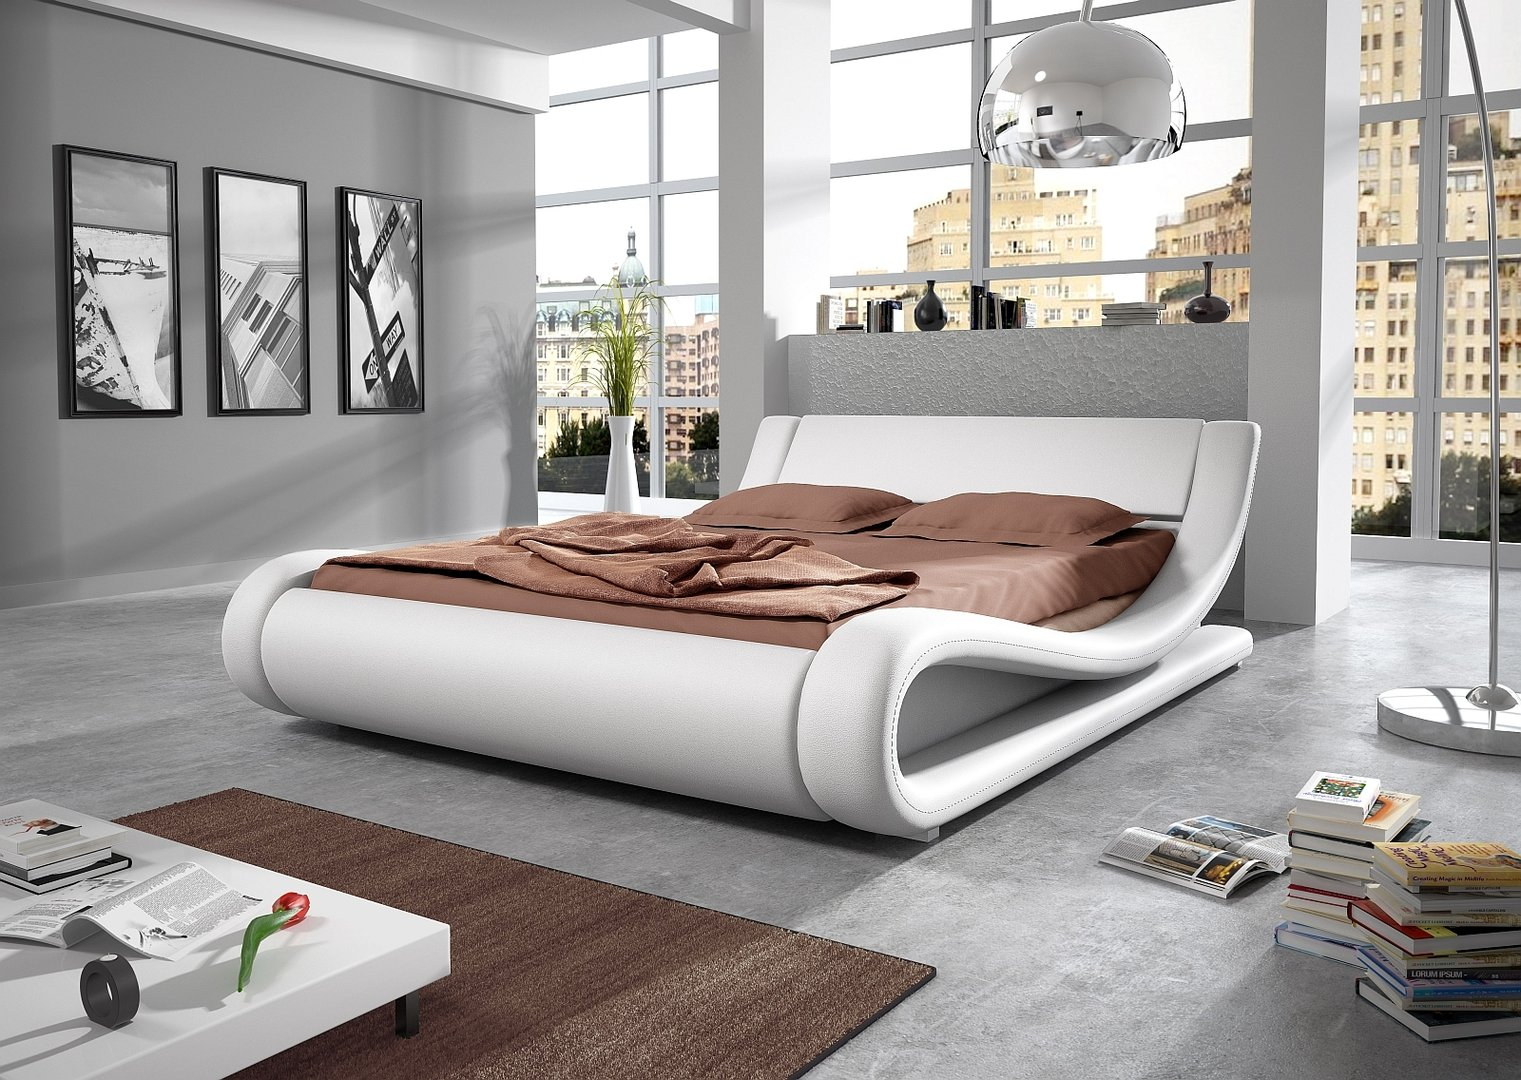 teenage-sisters-girls-girl-furniture-bedrooms-two-bedroom-design-modern-pictures-paint-guys-deals-ceiling-classic-wall-master-couples-ideas-lounge-spaces-looks-childrens-decor-tic-.jpg